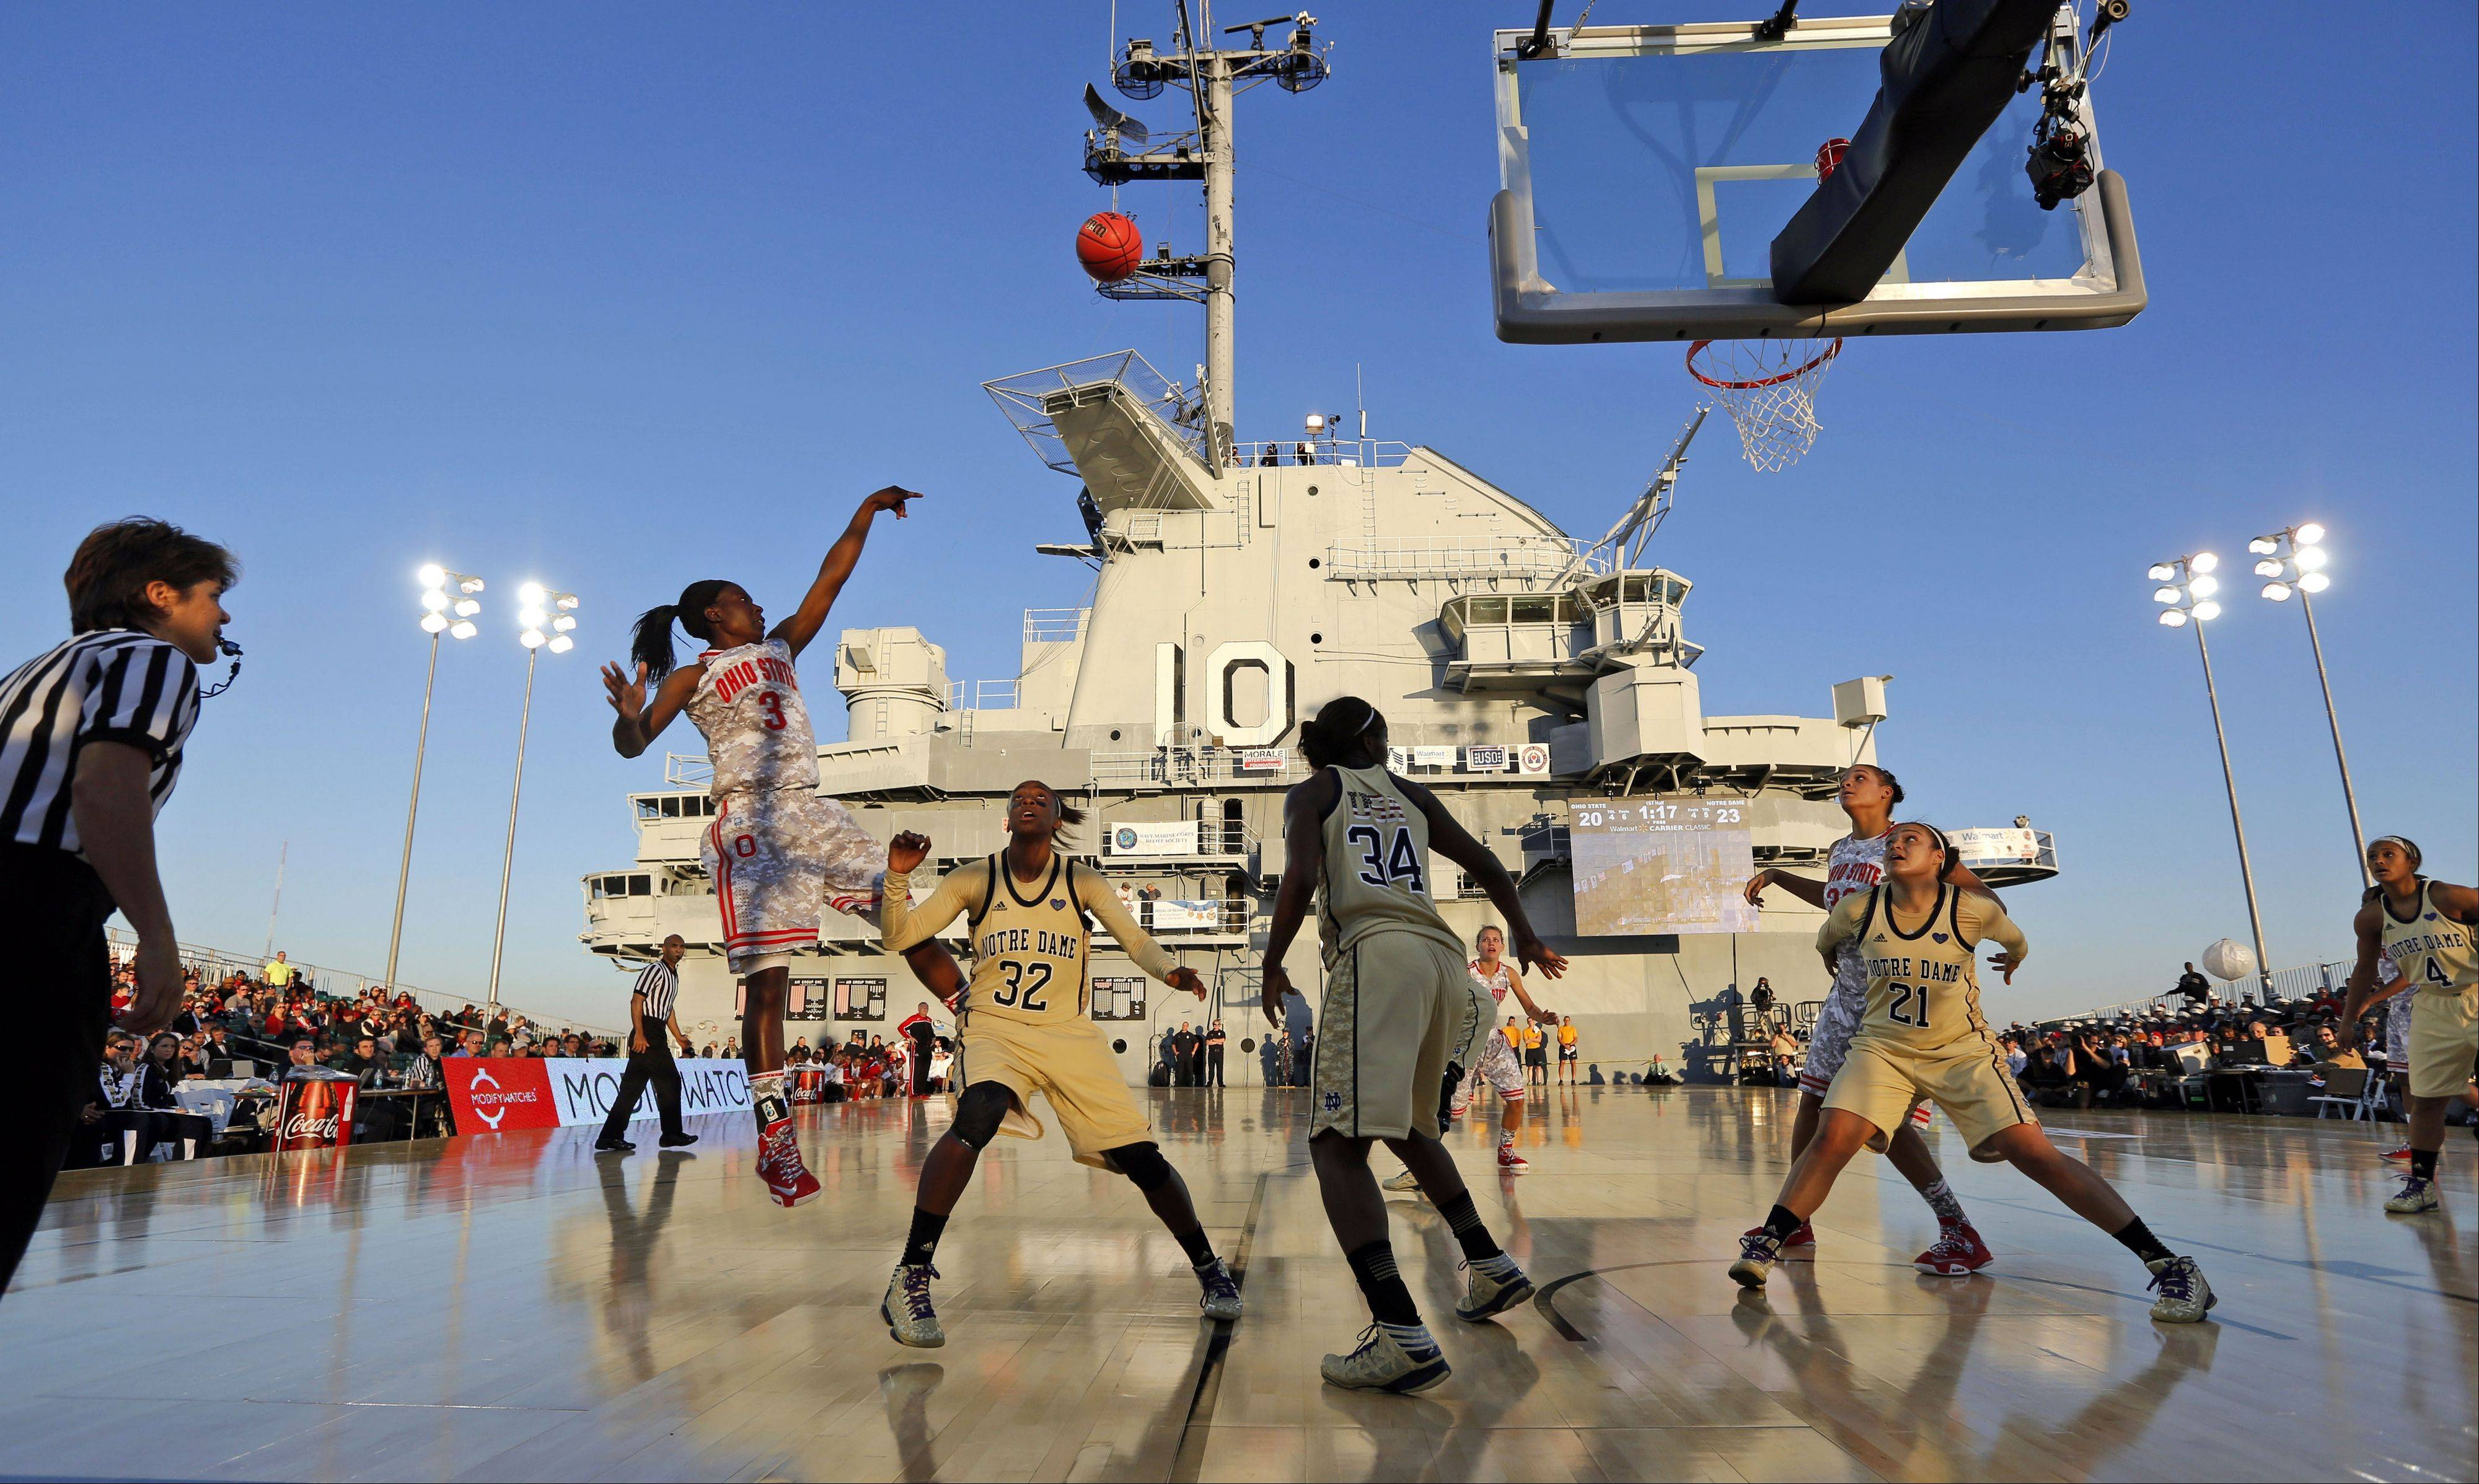 Ohio State's Amber Stokes shoots over Notre Dames's Jewell Loyd Friday during the first half of the Carrier Classic onboard the USS Yorktown in Mount Pleasant, S.C.